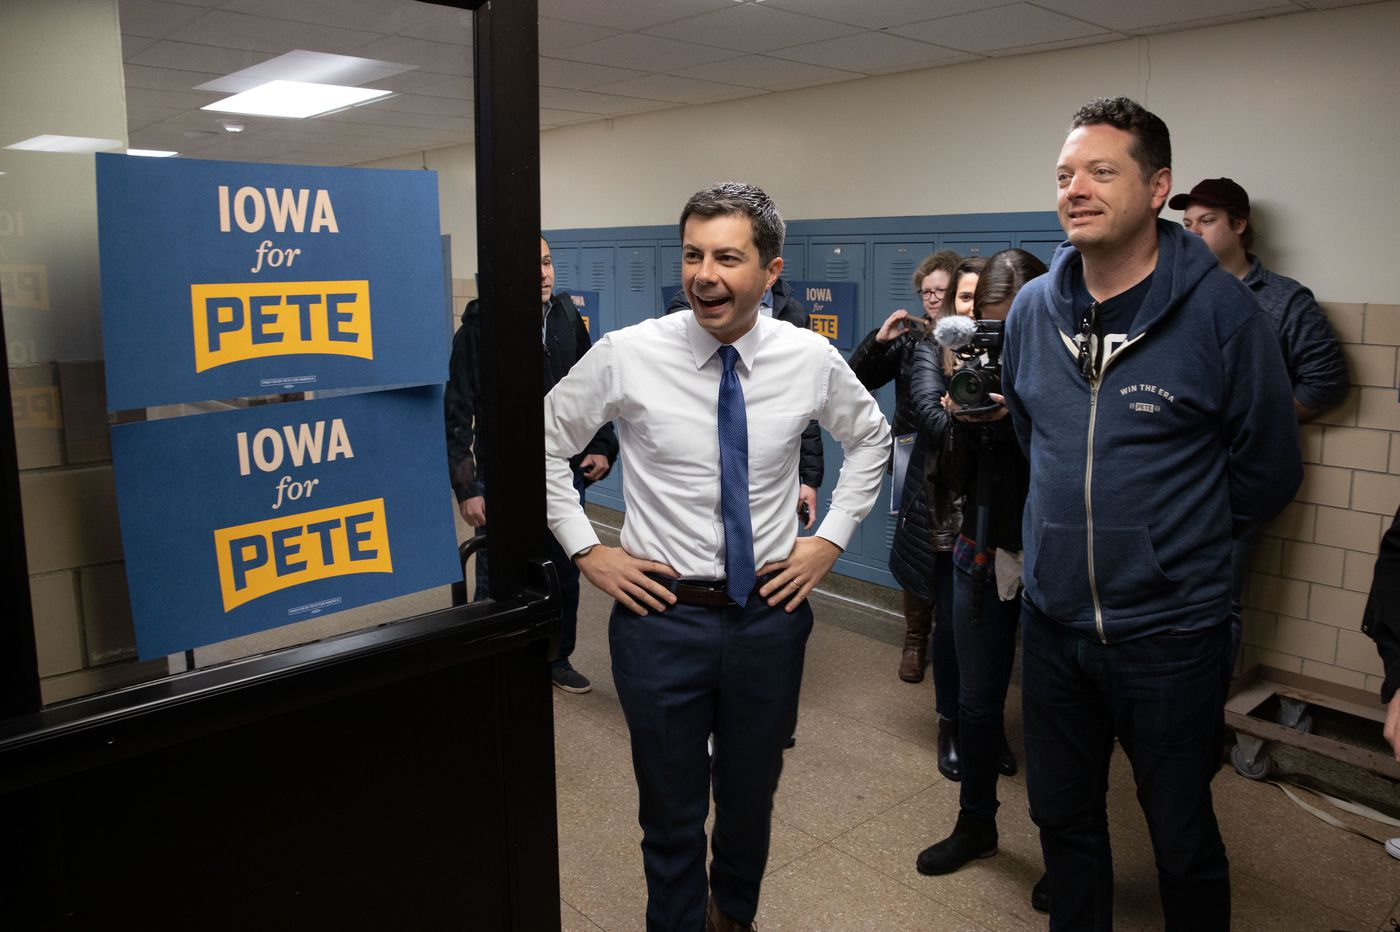 Iowa was a big boost for Pete Buttigieg. Meet the Philly guy behind his campaign.